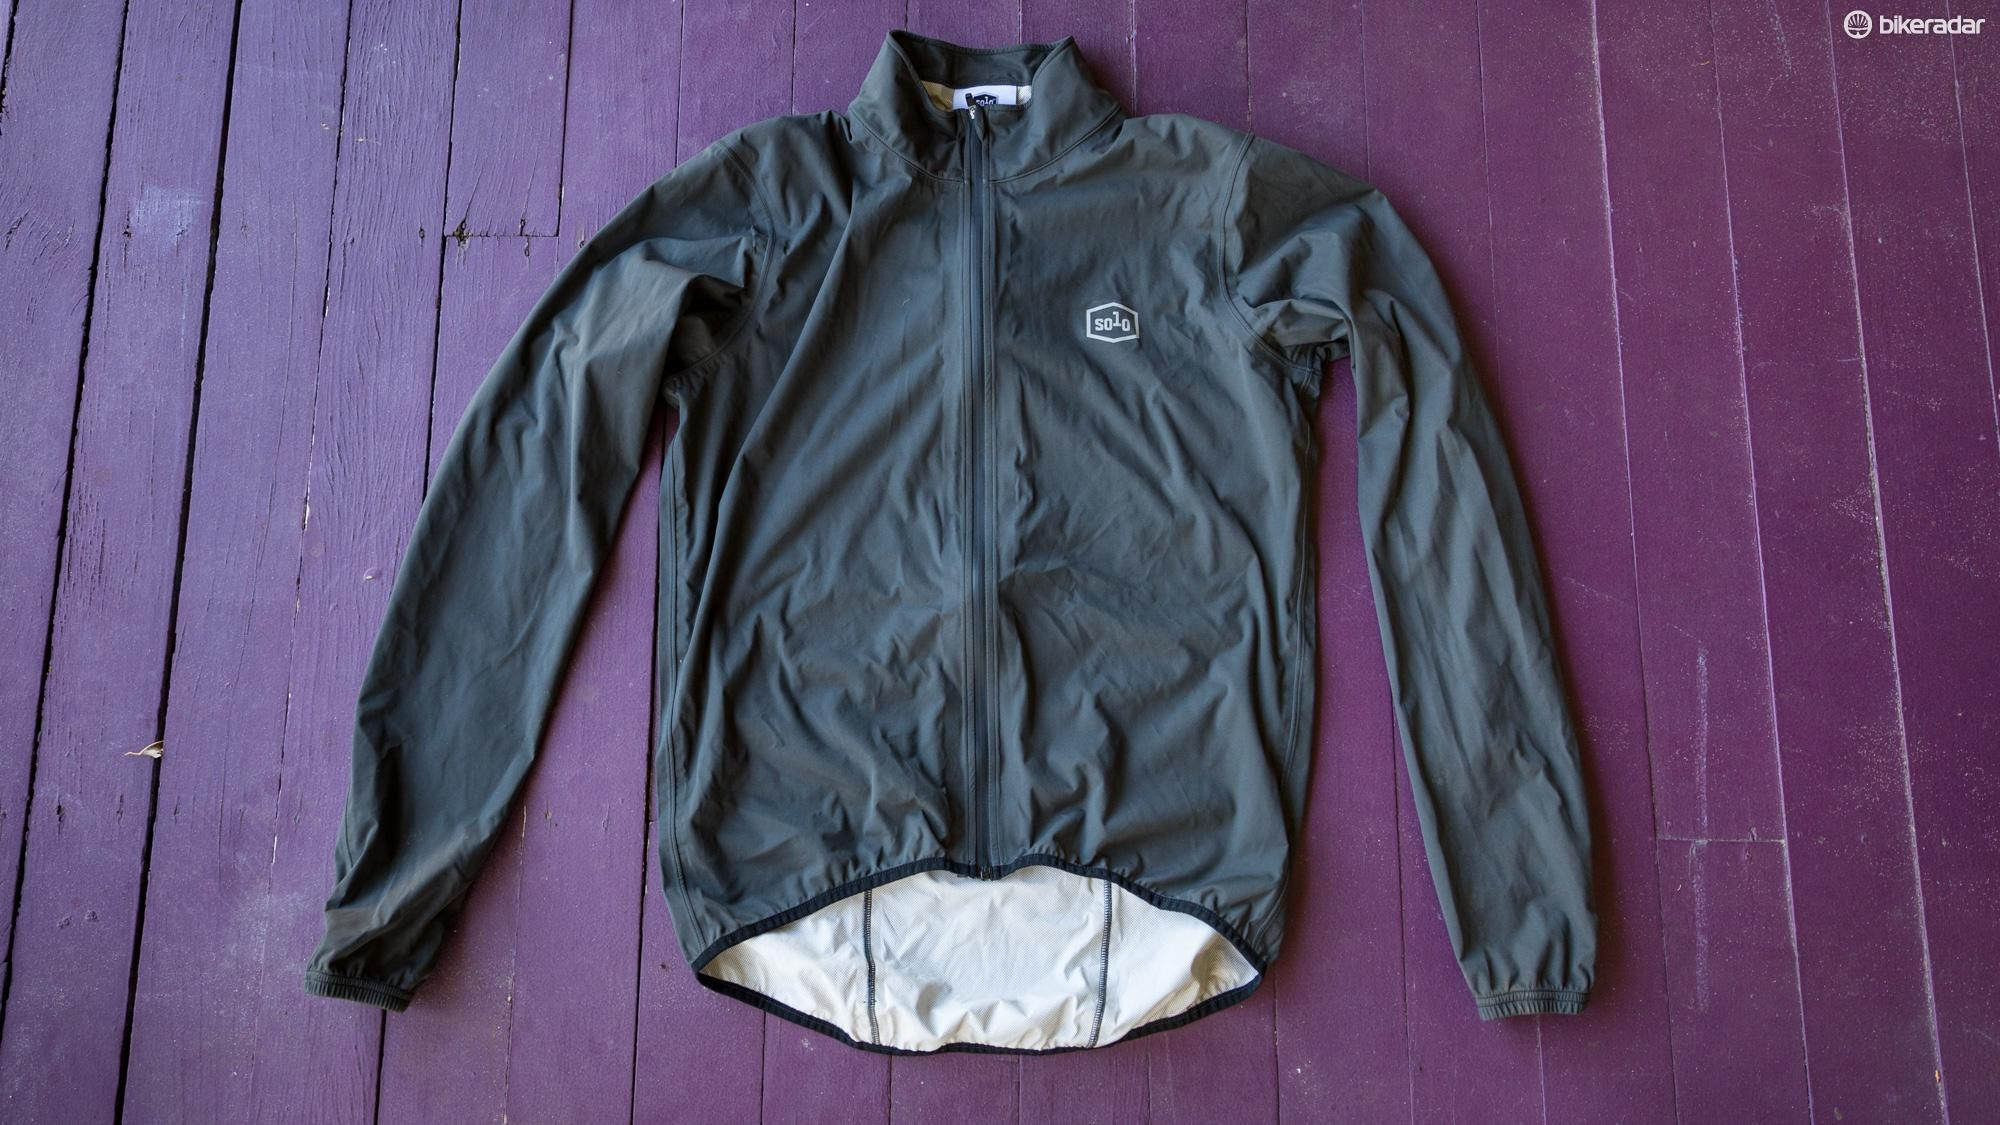 Kiwi outfit SoLo has sent over its latest jacket